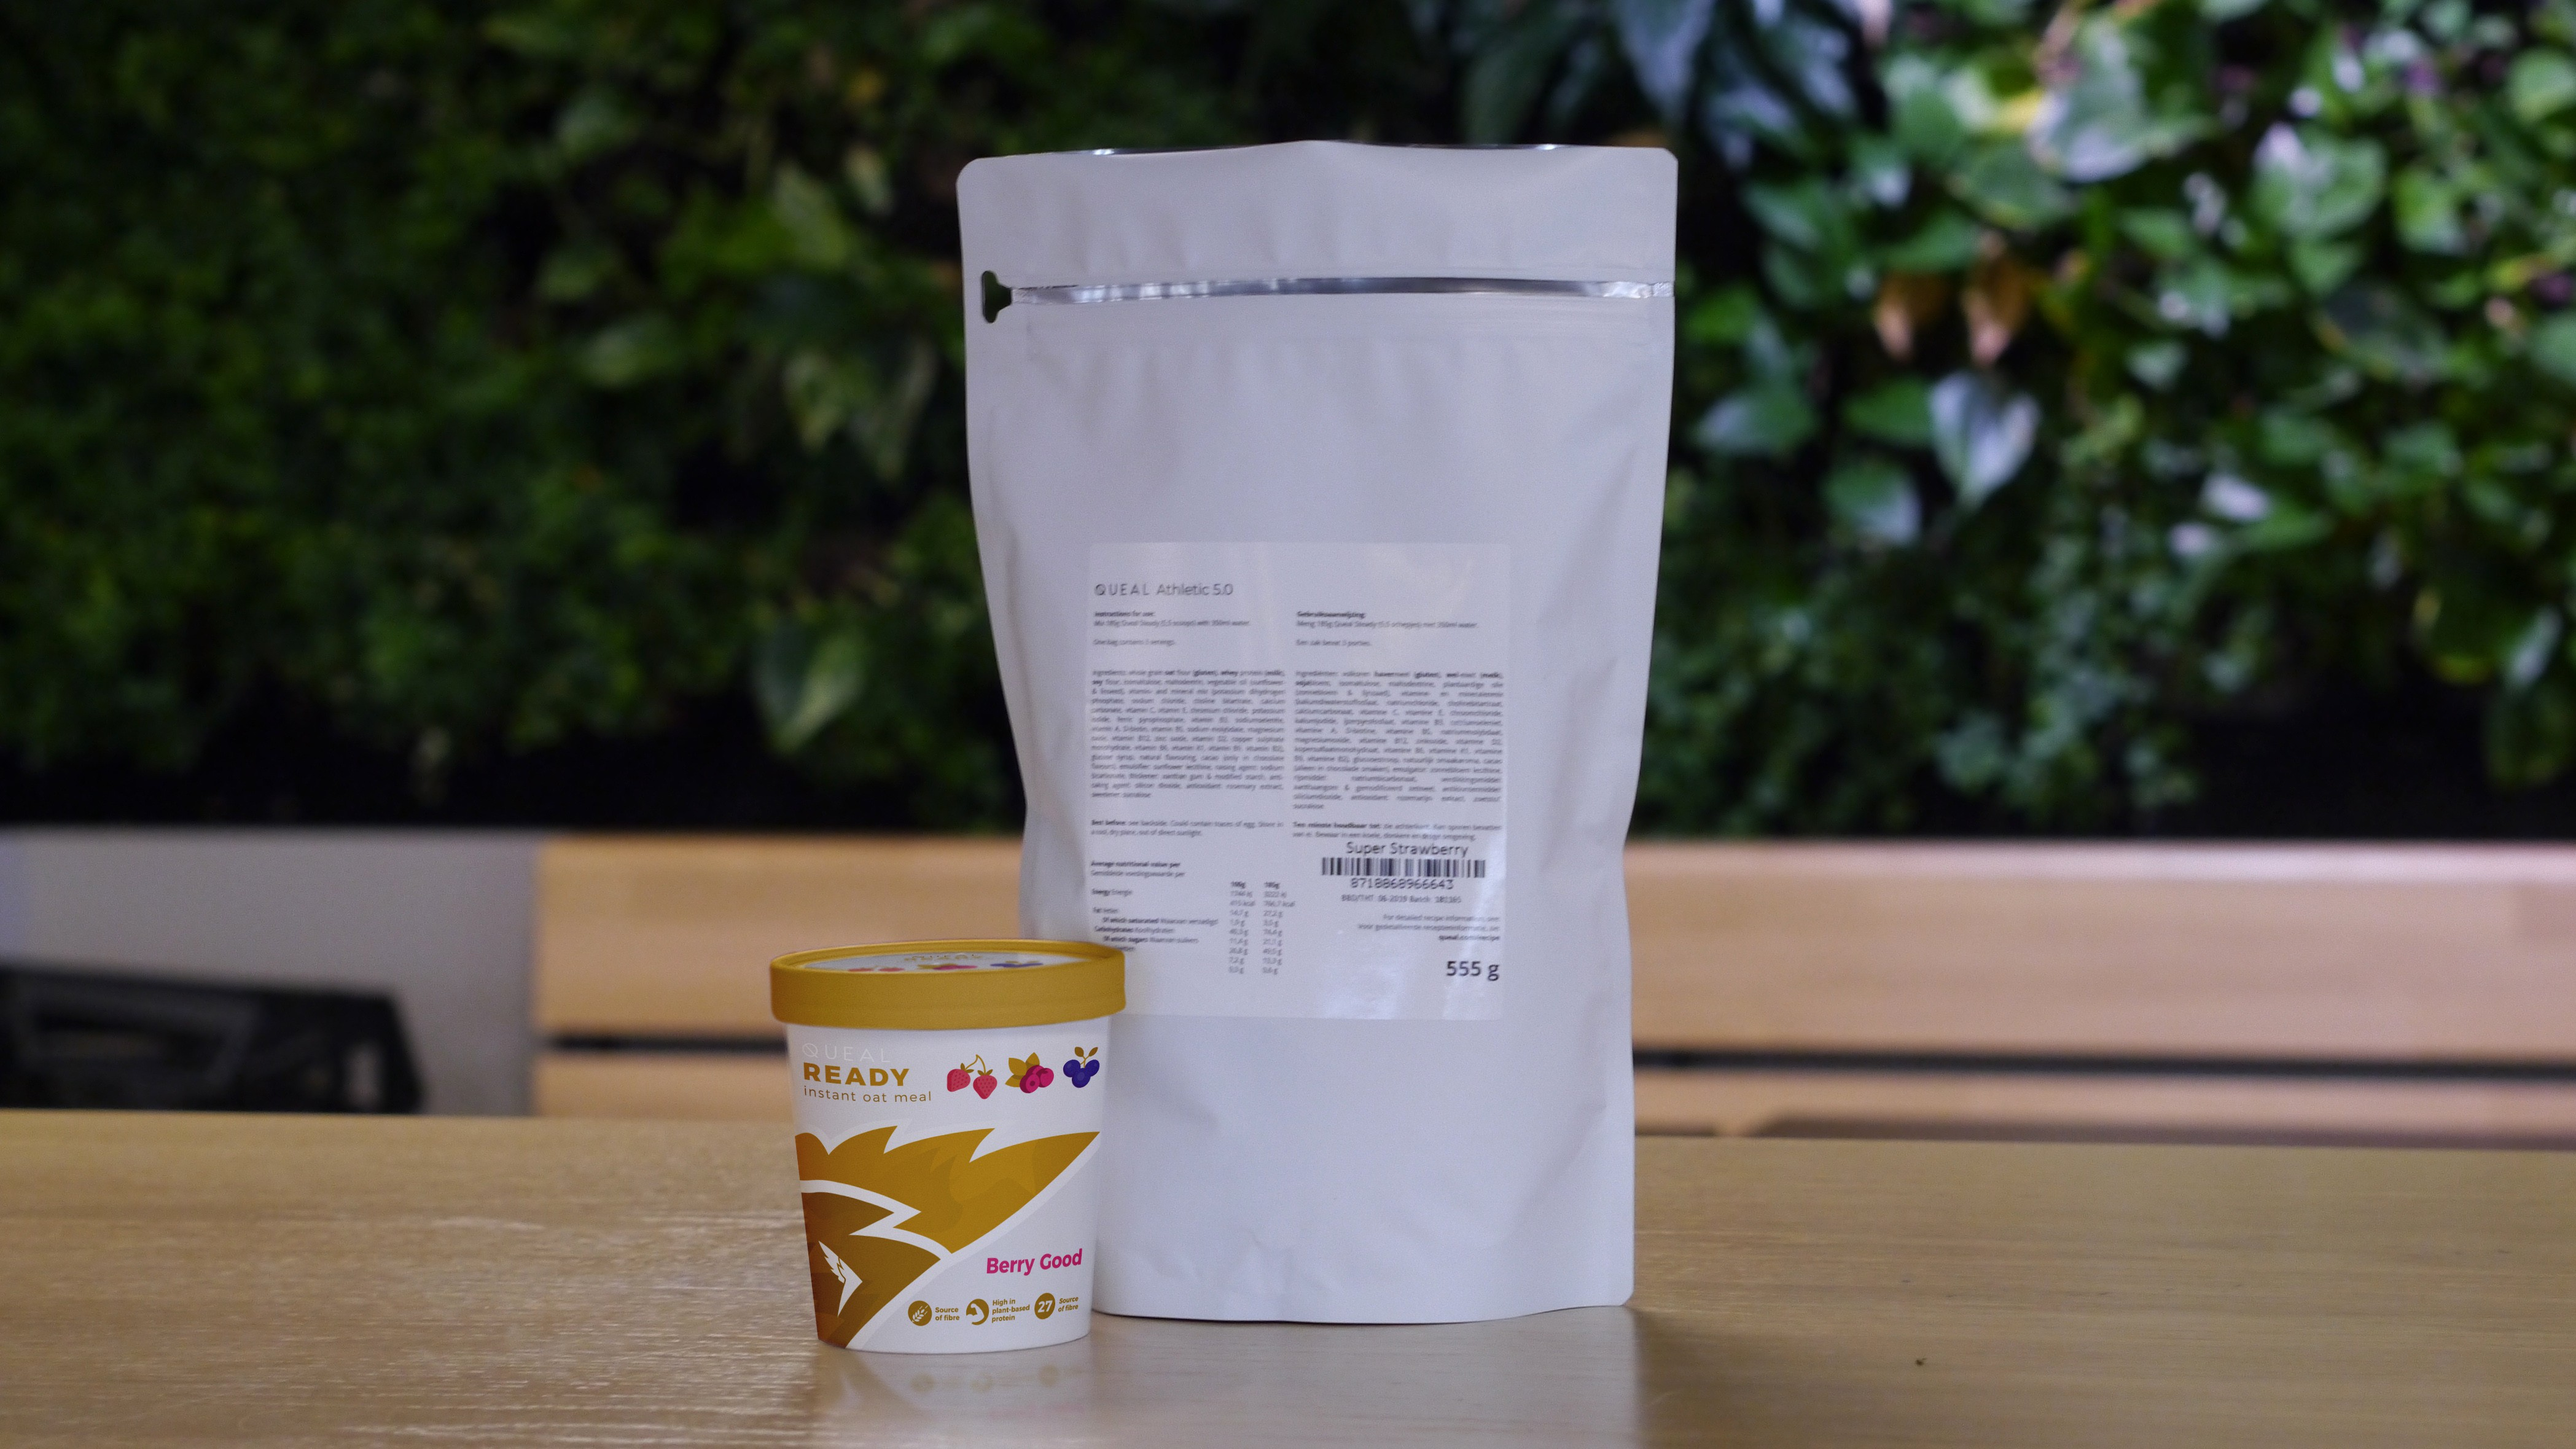 Packaging design Queal instant oat meal